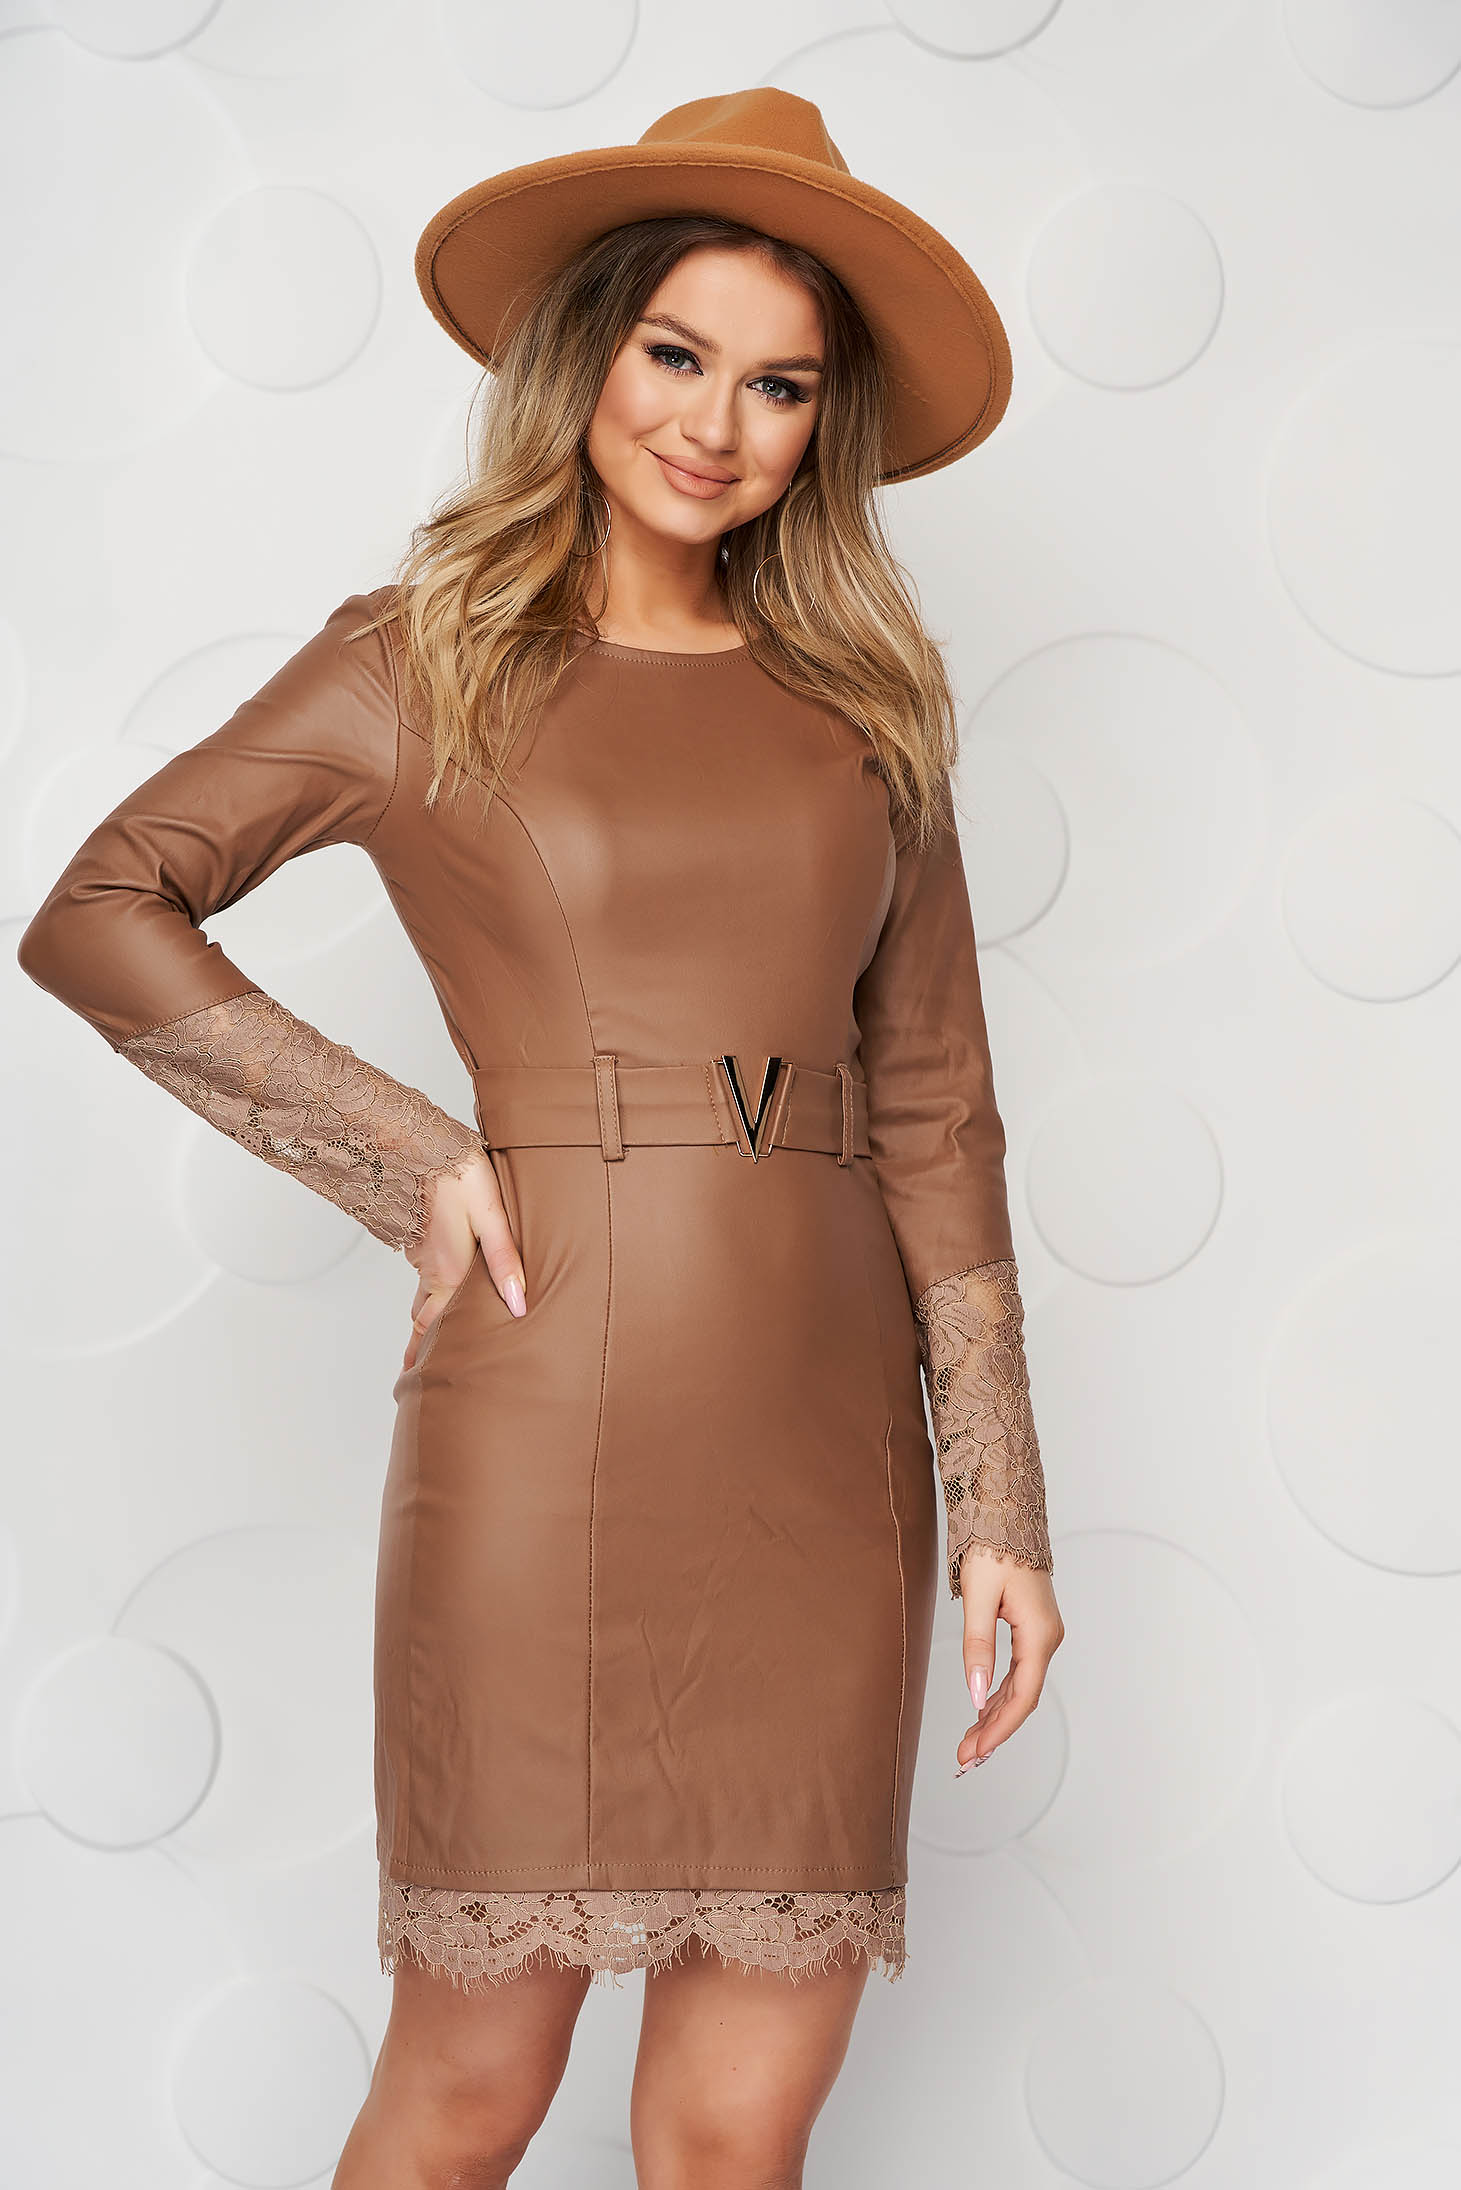 Brown dress from ecological leather pencil with lace details